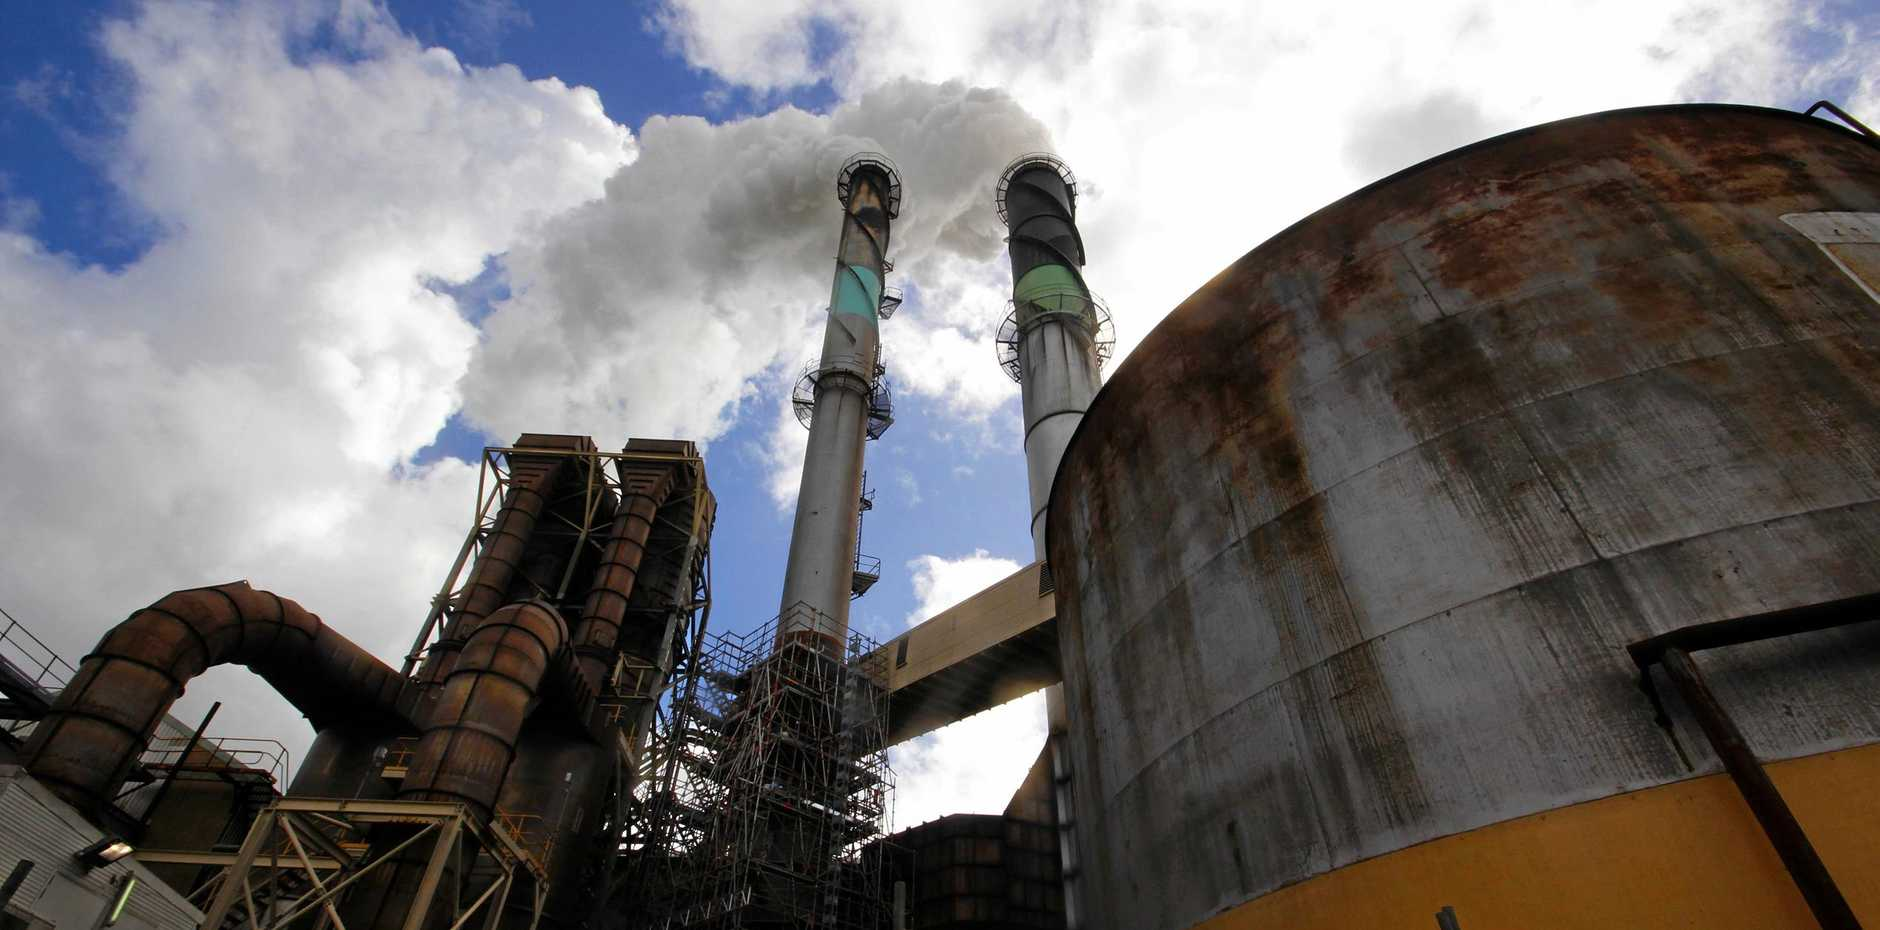 The disruption was reflected in the crush report with the Proserpine Mill's output restricted to just 62,124 tonnes.